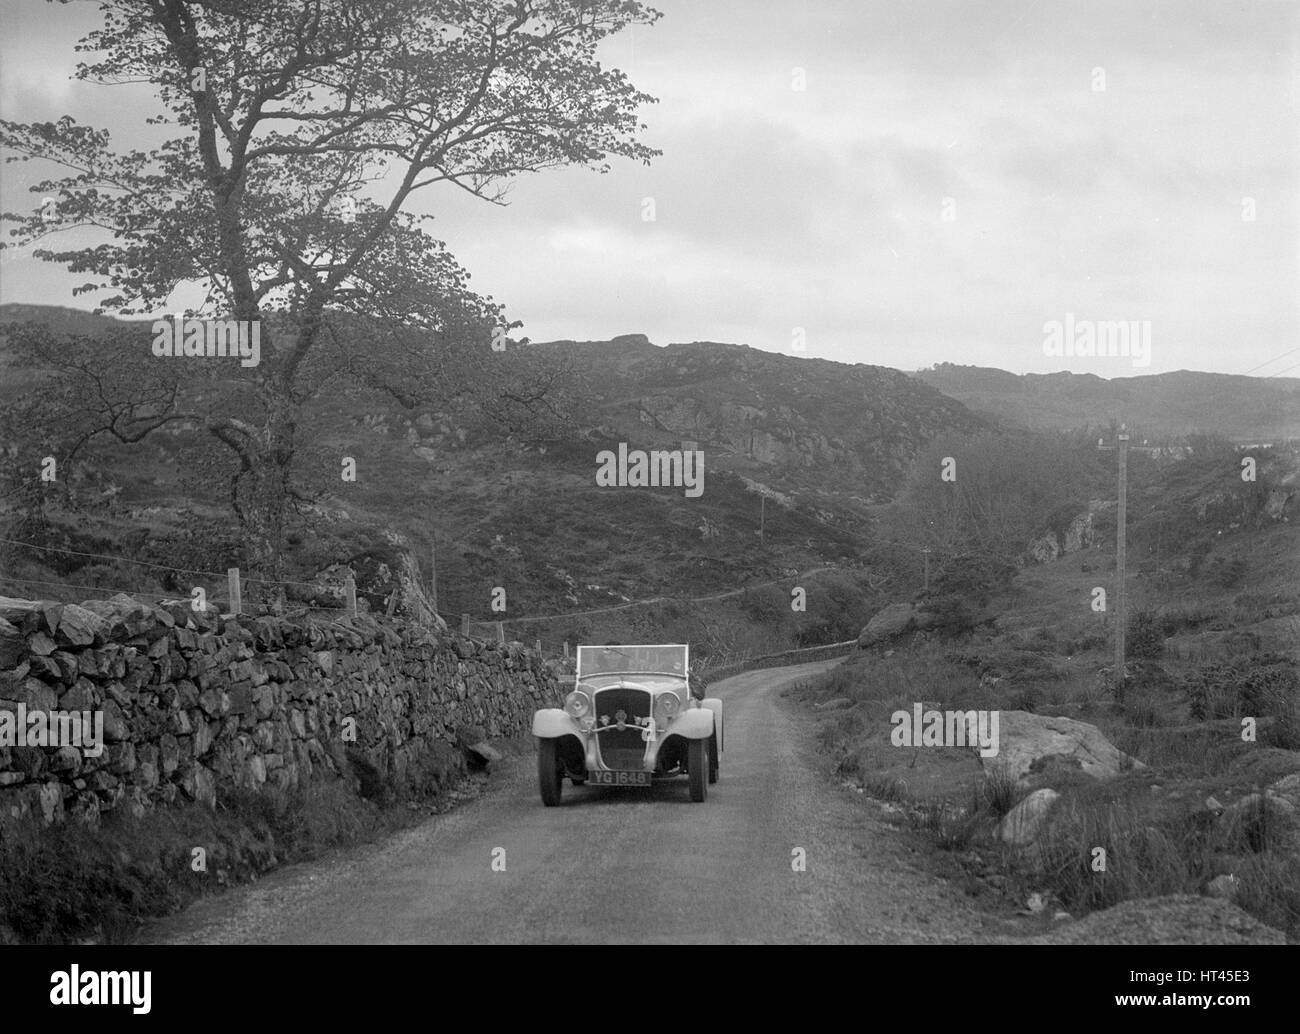 Essex Terraplane of J Esson Gibson competing in the RSAC Scottish Rally, 1934. Artist: Bill Brunell. - Stock Image